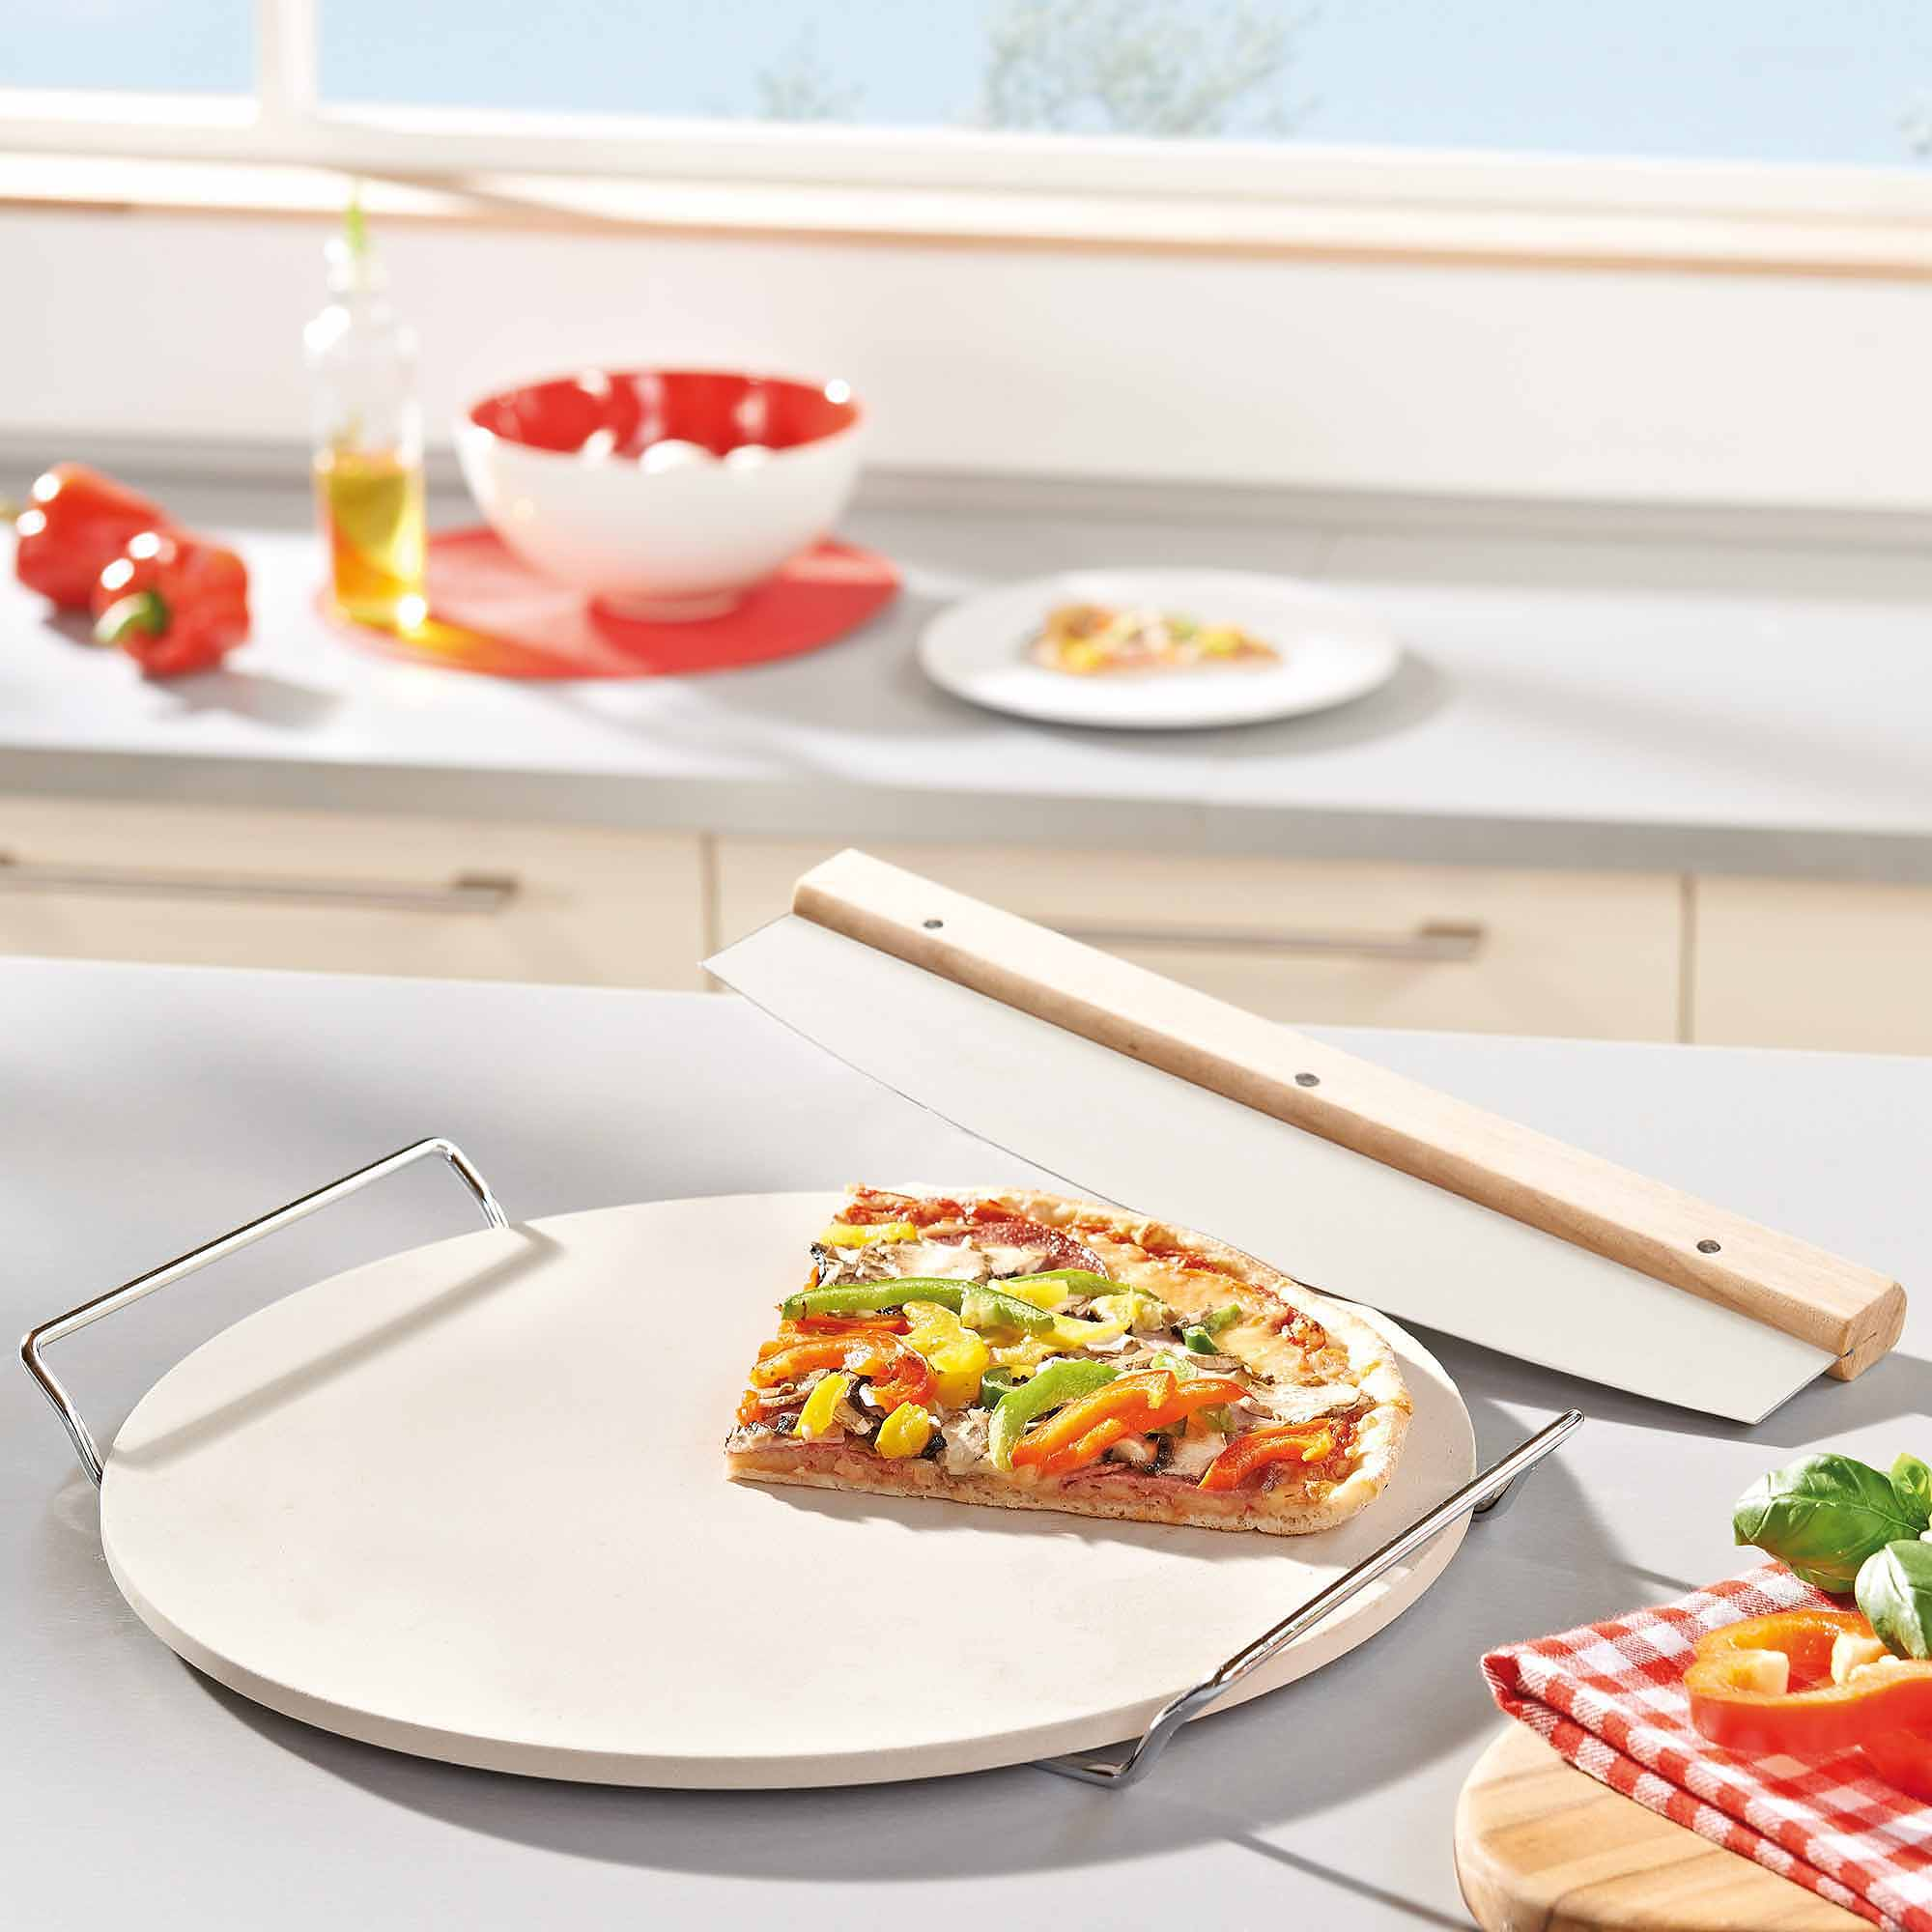 Leifheit 33 cm Round Ceramic Pizza Stone with Carrying Tray and Large Slicer, Grey by LEIFHEIT